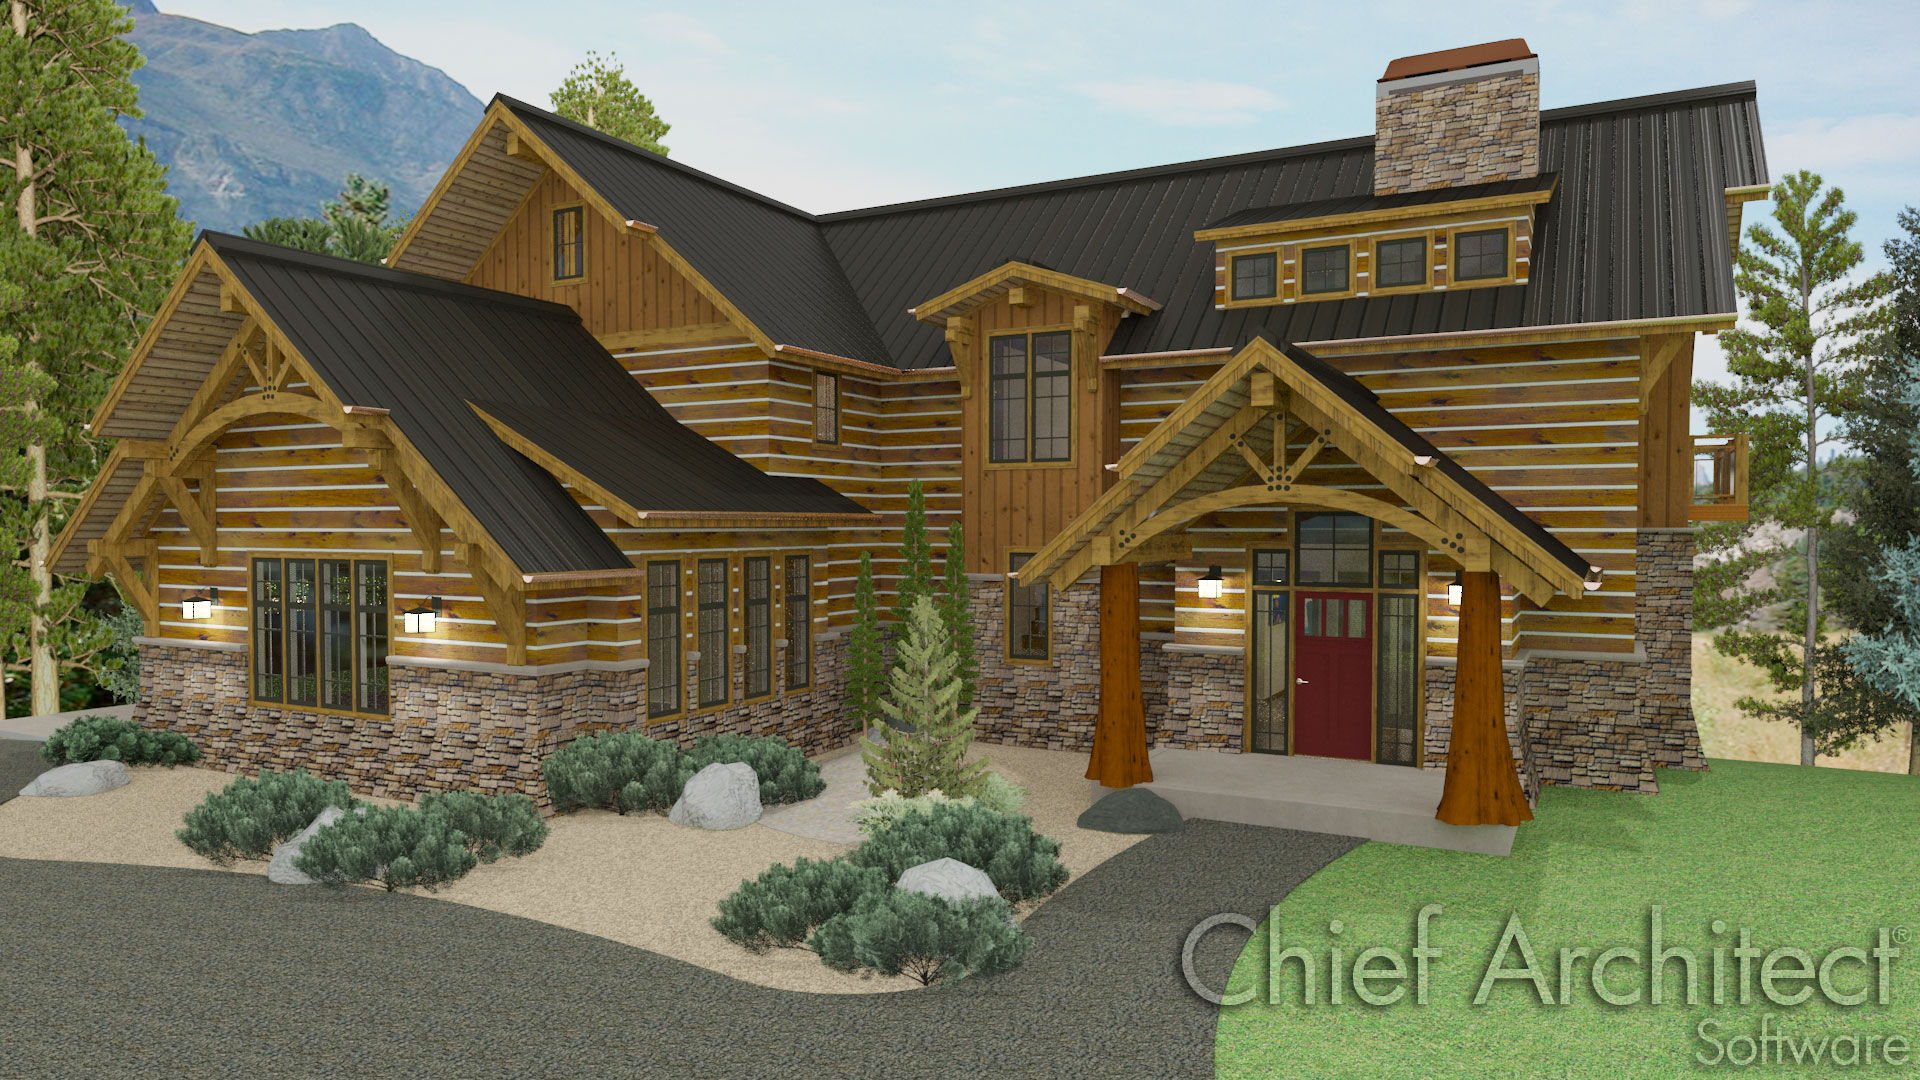 Chief architect home design software samples gallery for Plans d arkitek